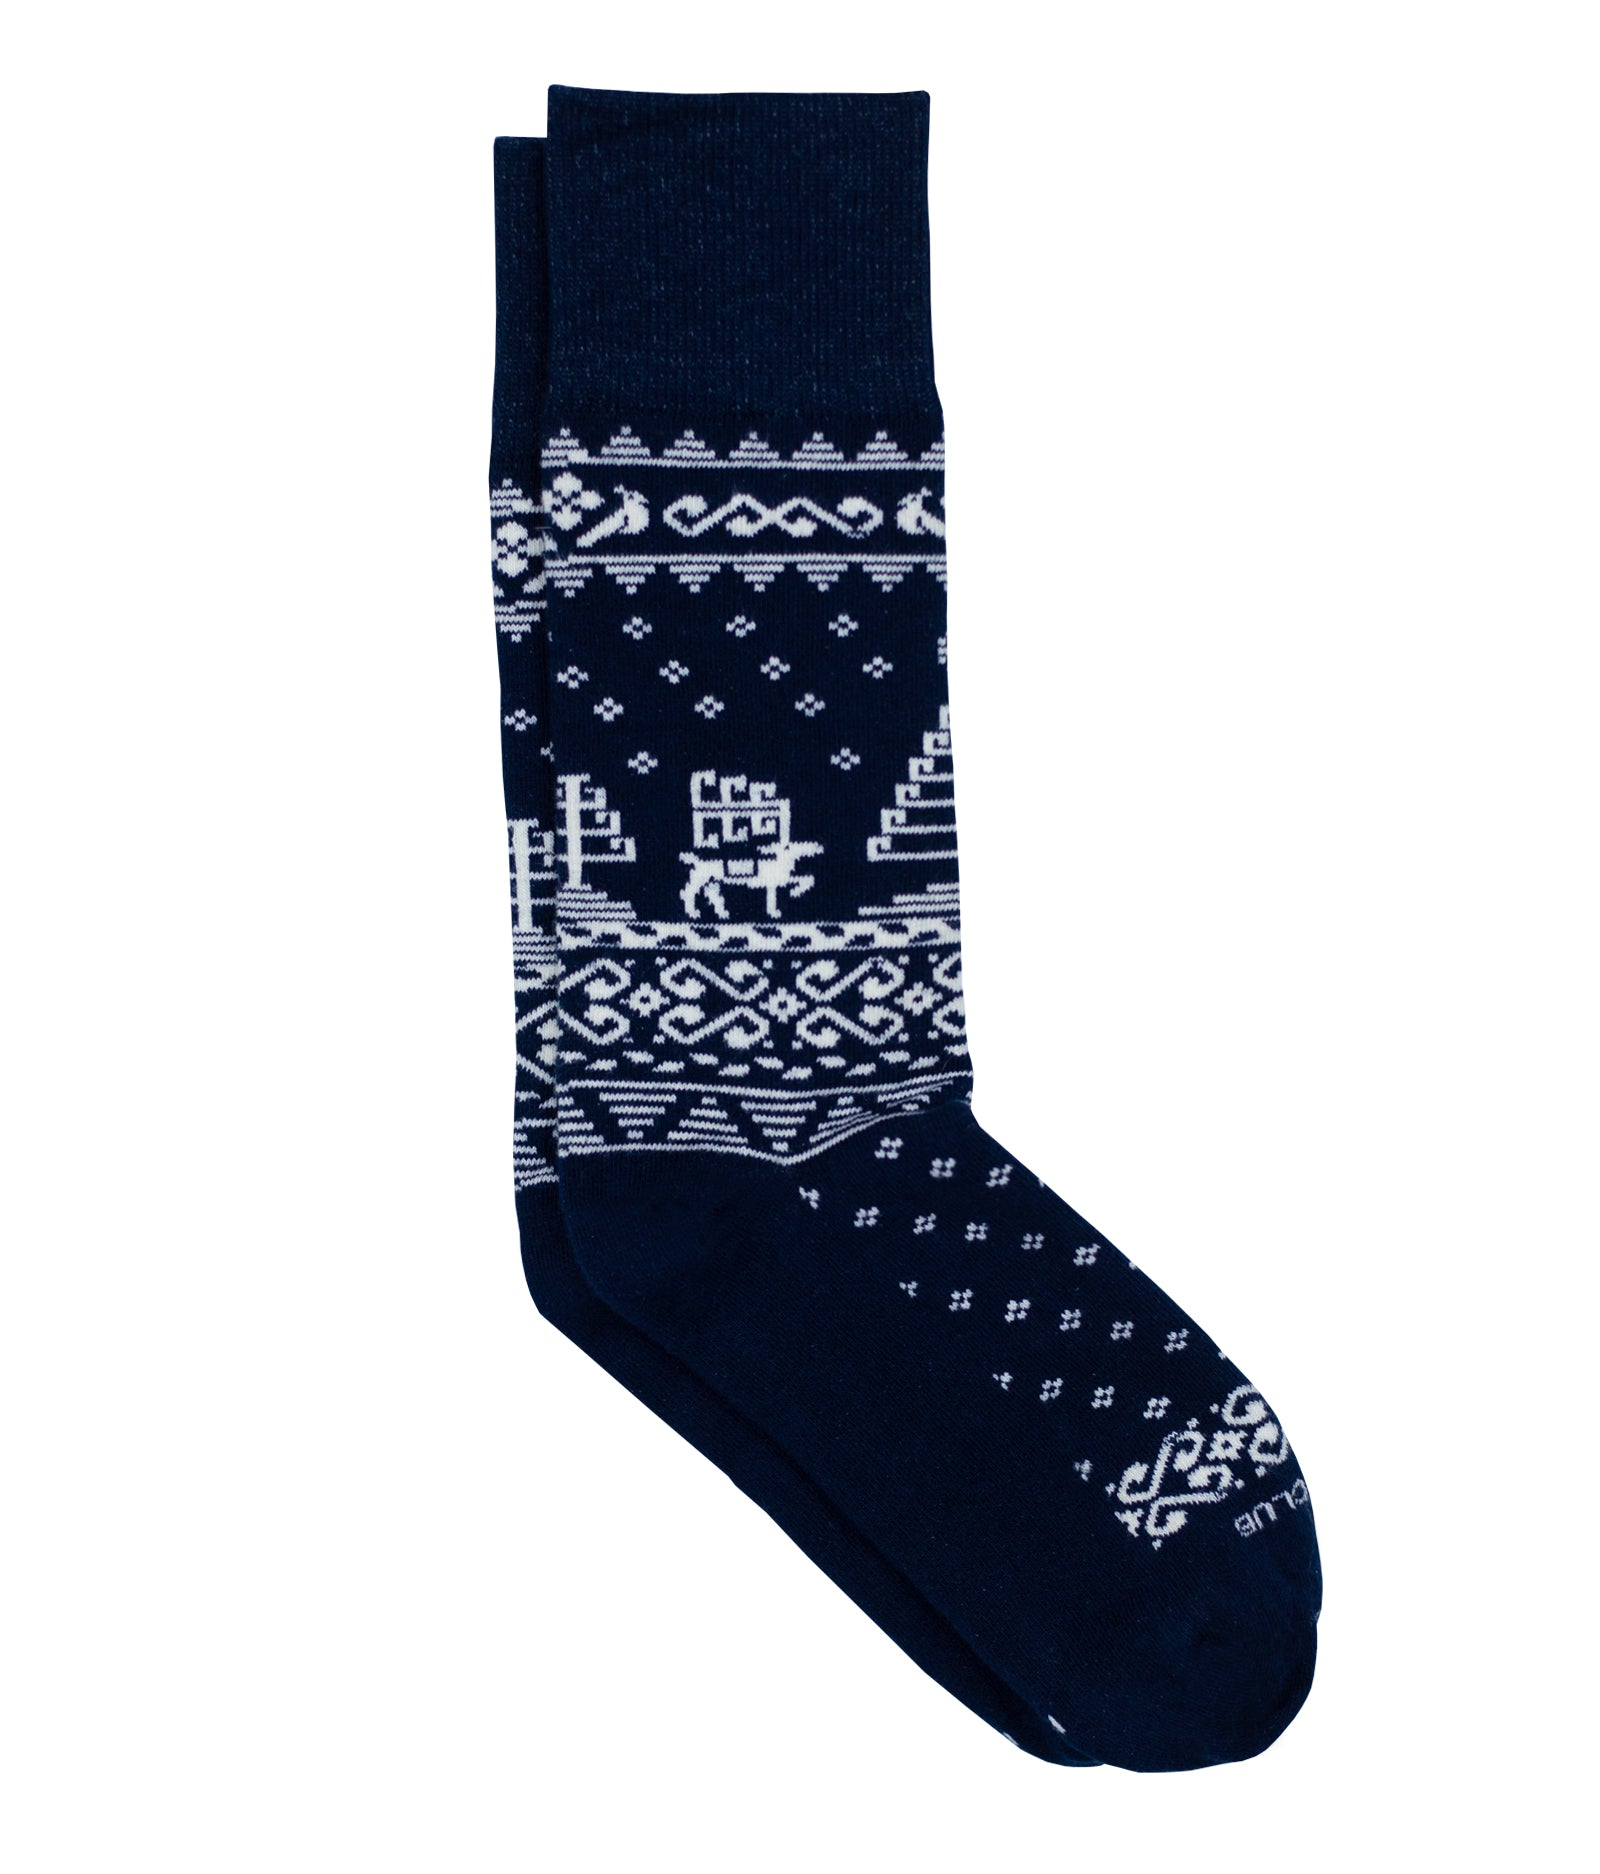 Holiday Sock - Limited Edition - Navy - Sock Club Store